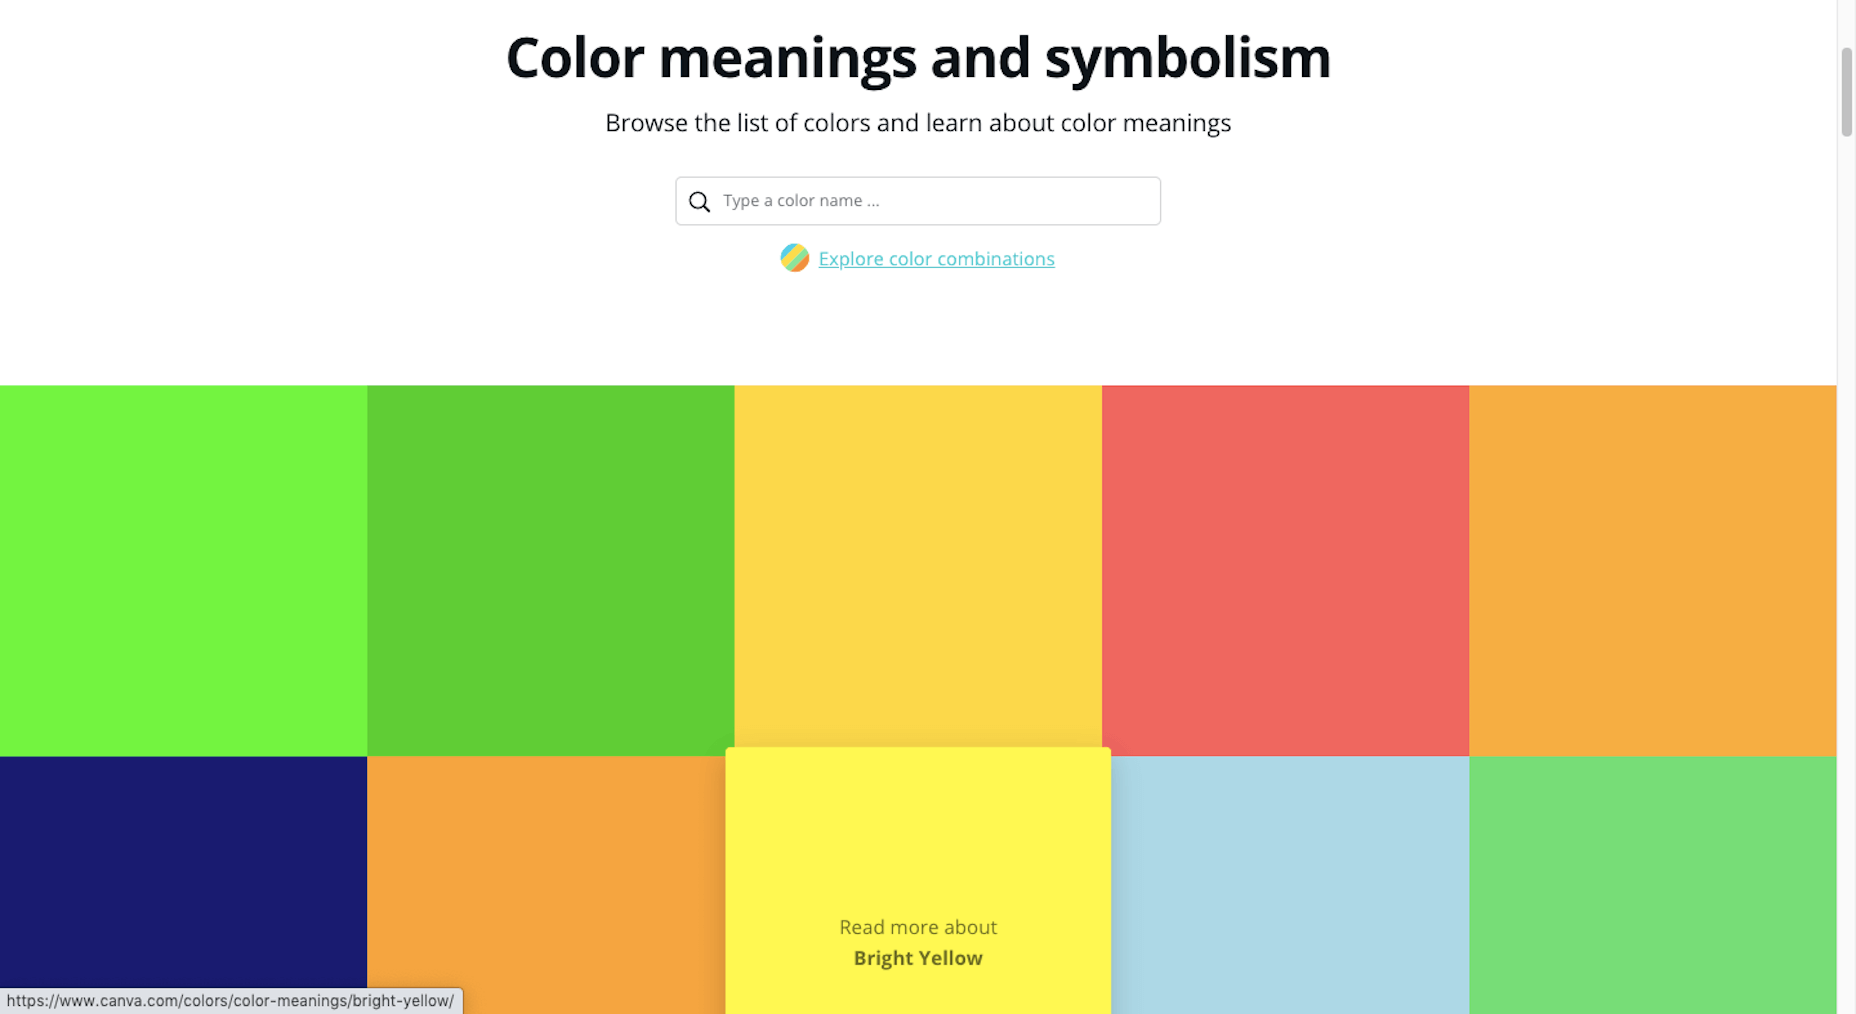 Canva Color Meanings tool